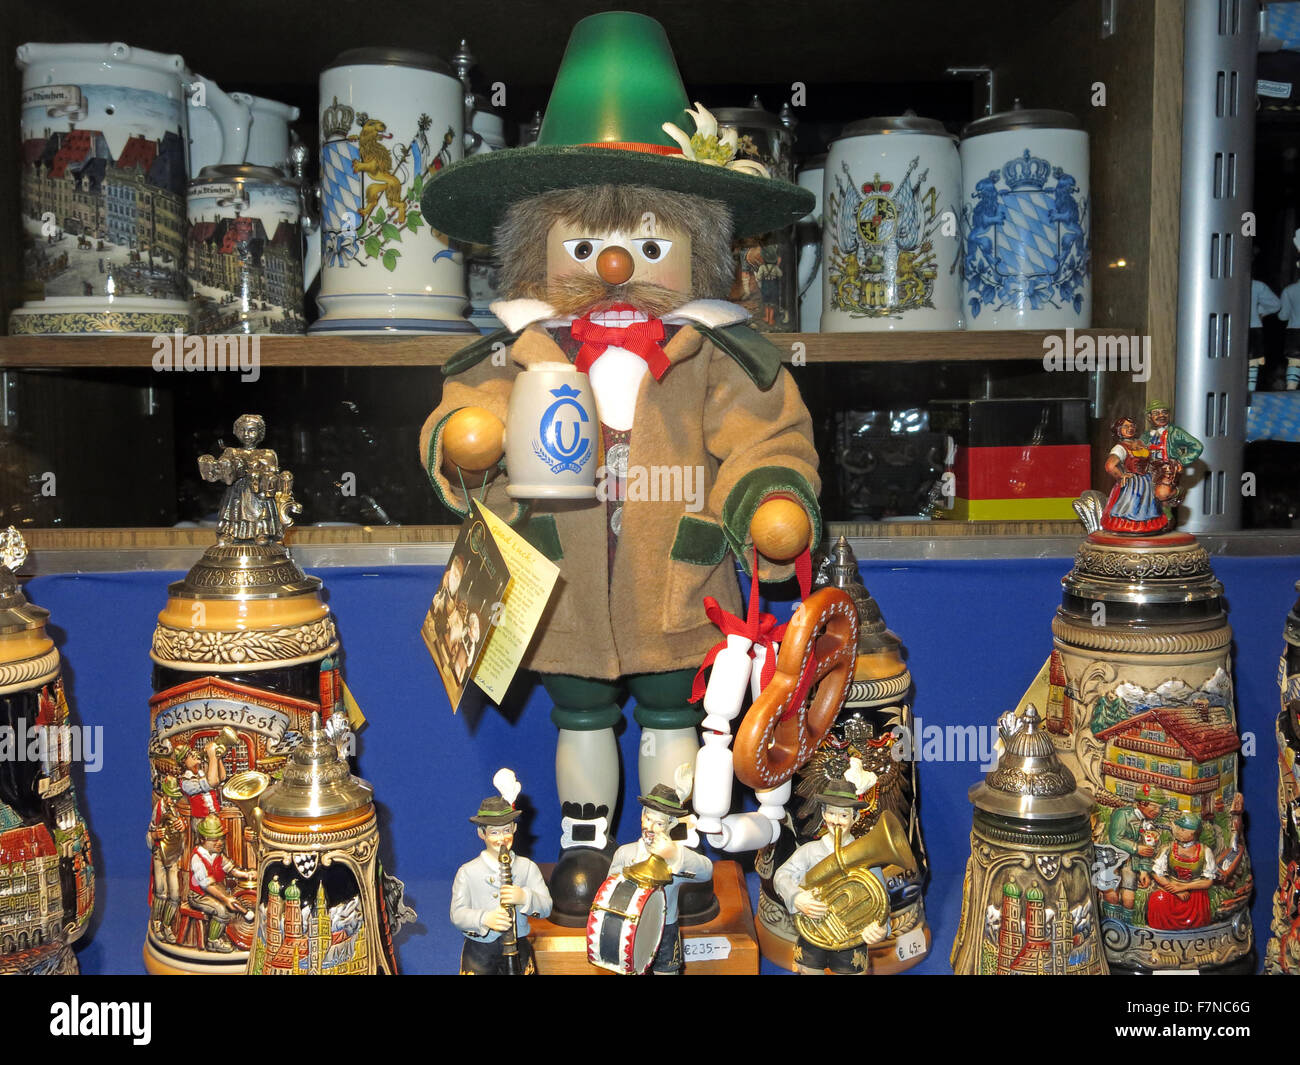 Oktoberfest shop window display, Munich,Germany; Steins, dolls, T-shirts and other souvenirs Stock Photo